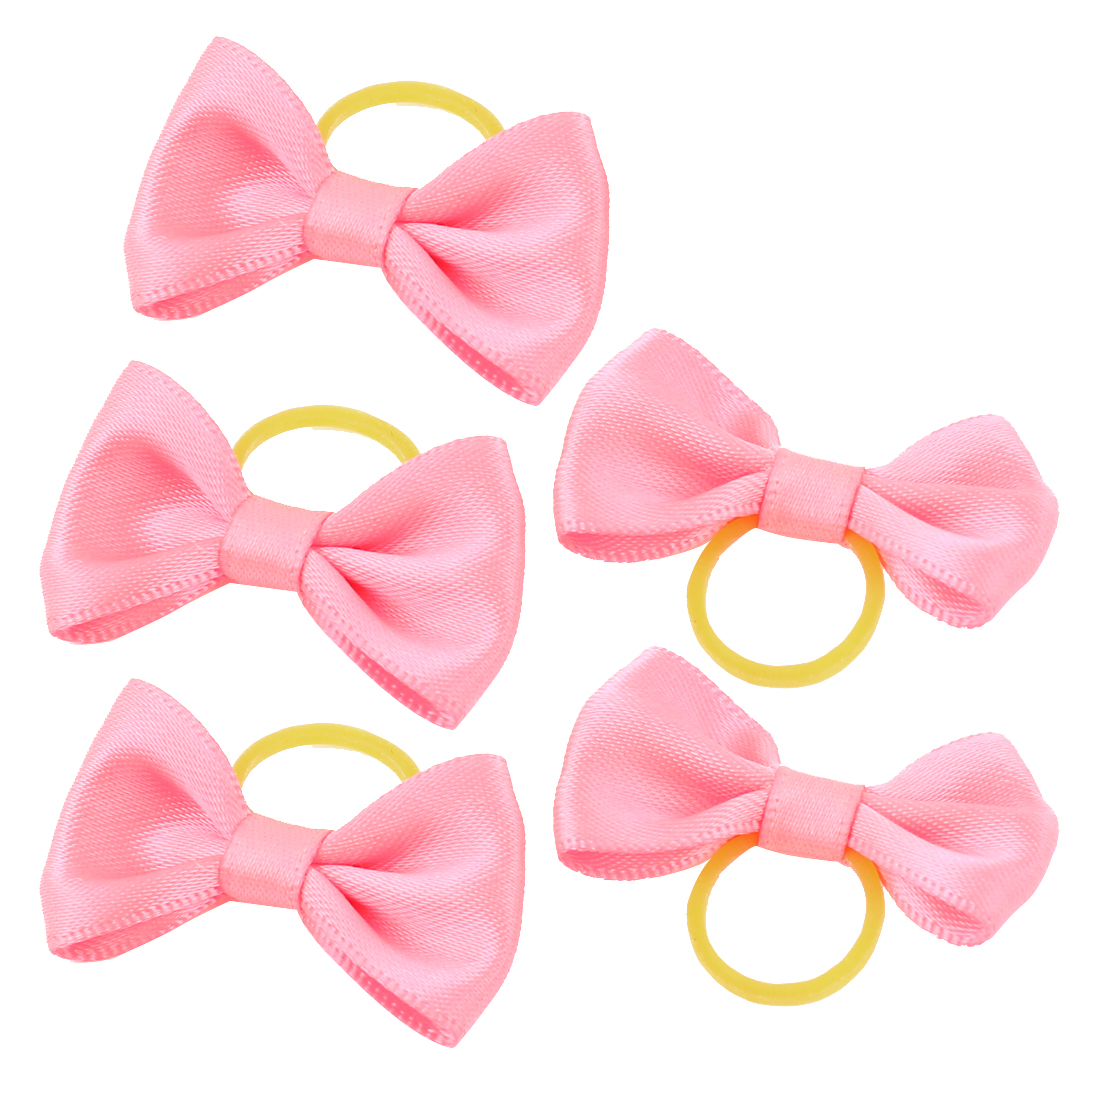 Pet Dog Puppy Hair Grooming Bowknot Rubber Bands Clips Hairpins Bow Pink 5 Pcs